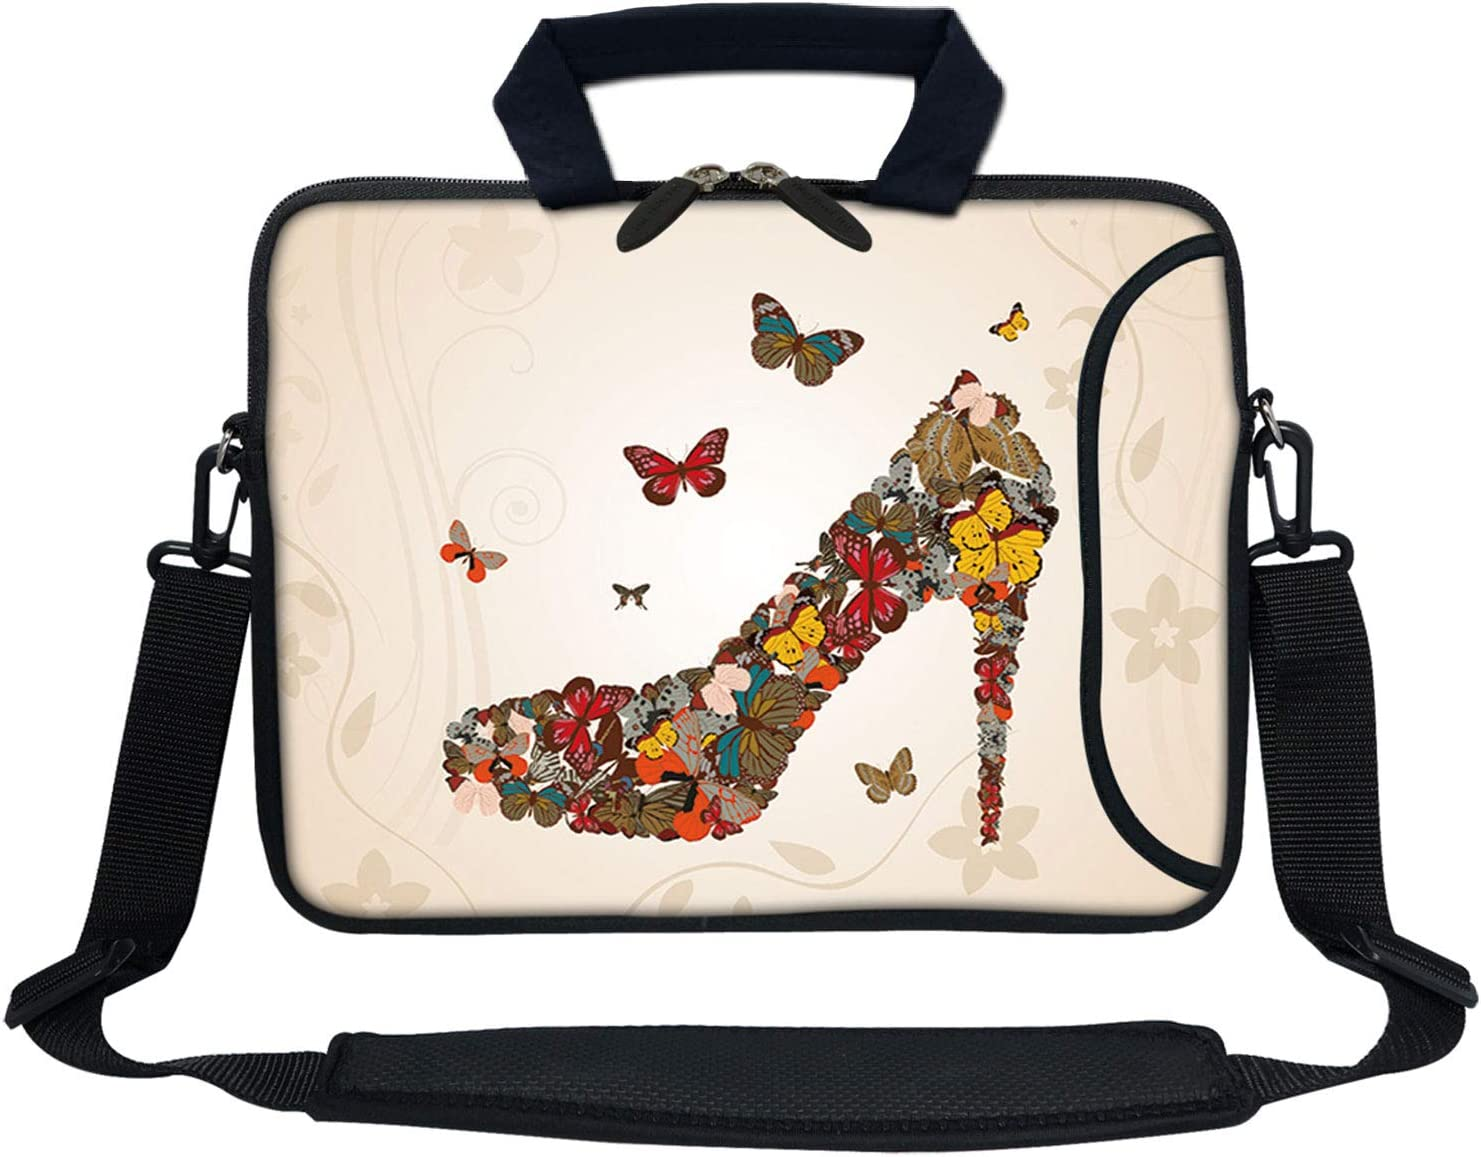 Meffort Inc 13 Inch Neoprene Laptop Bag with Extra Side Pocket Fits for 12.5 to 13.3 Inch Size Computer - Butterfly High Heel